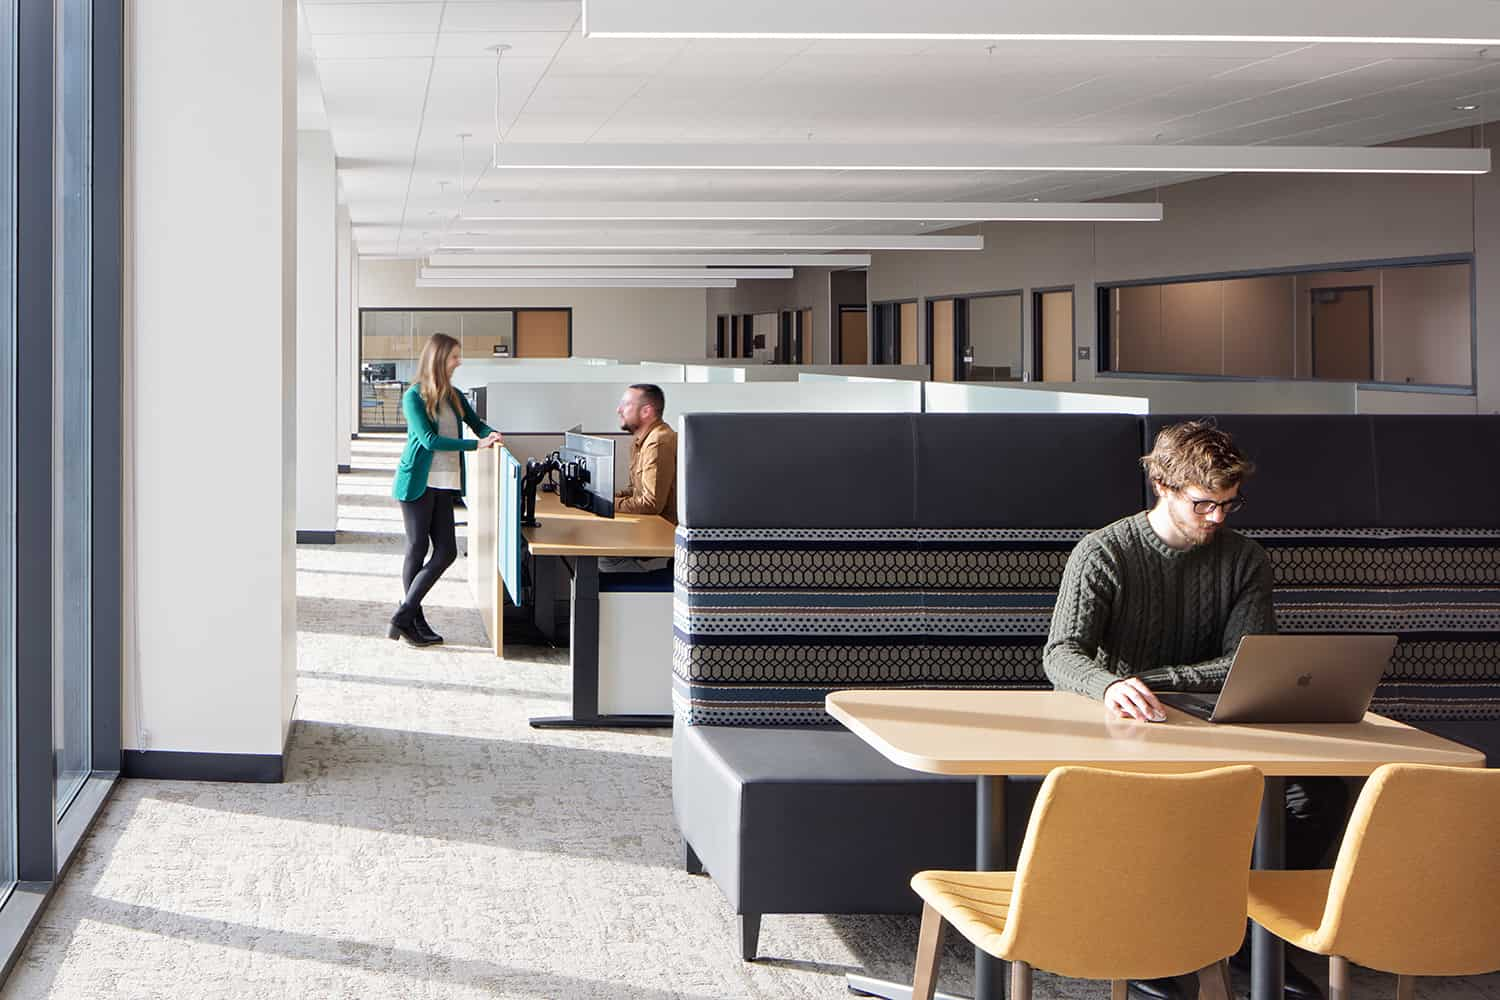 Open office workstations and nearby desks for collaborative work.